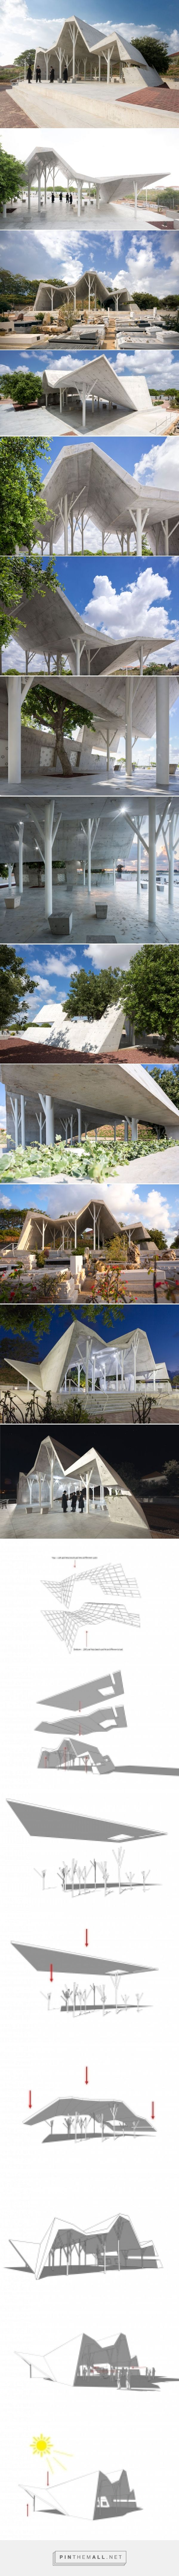 ron shenkin places concrete folded canopy over cemetery pavilion in israel - created via http://pinthemall.net